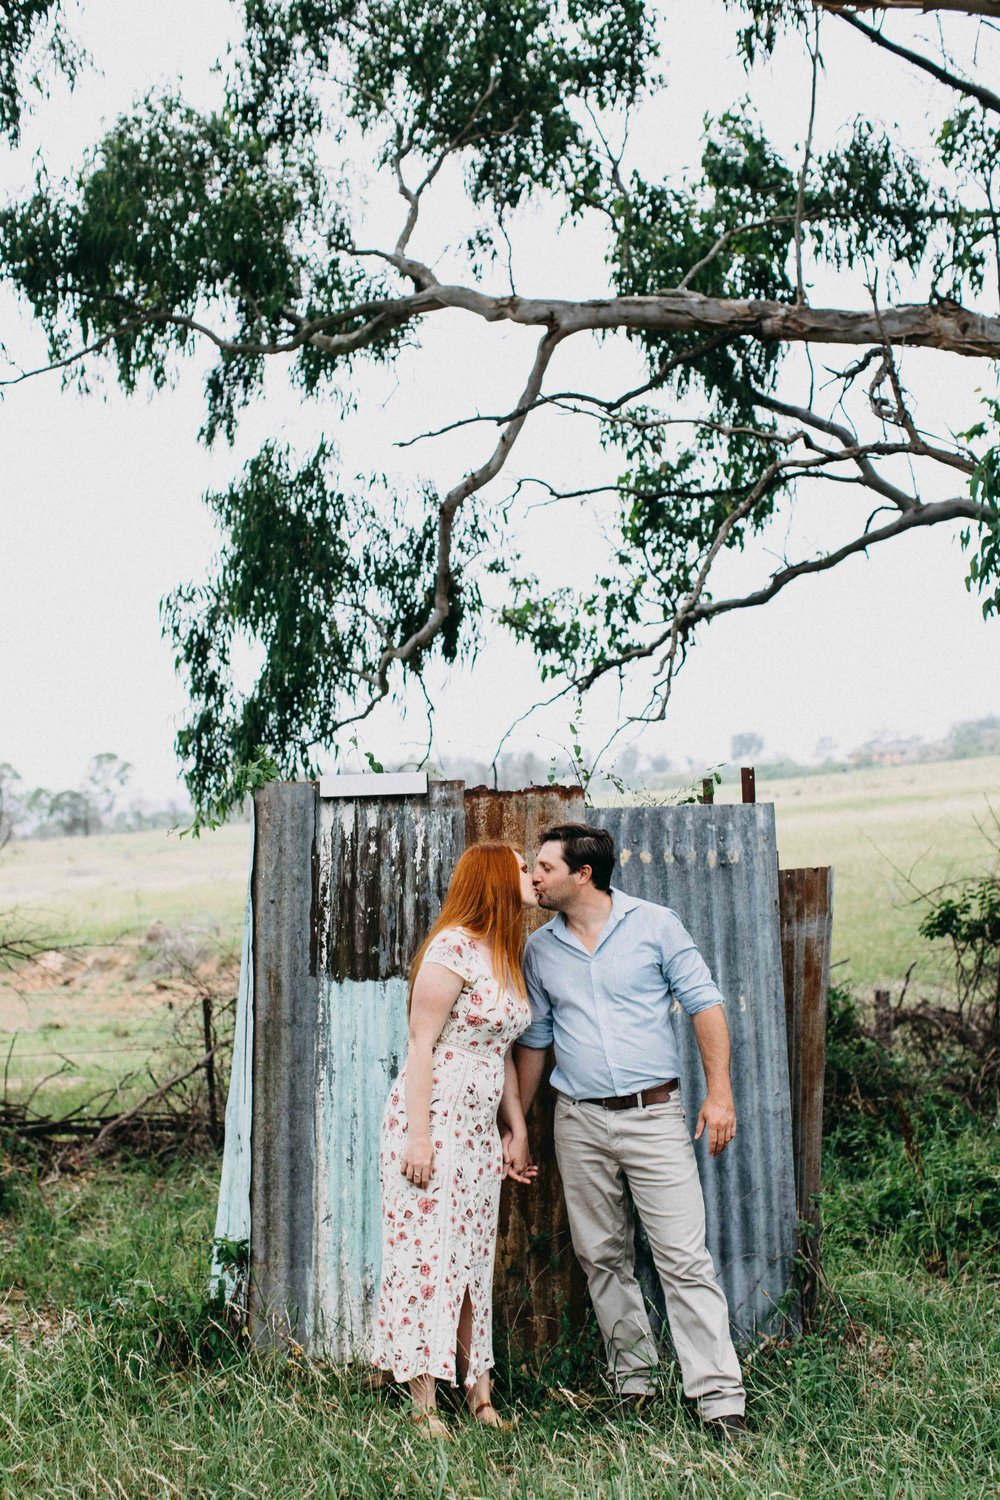 camden-engagement-session-wollondilly-photography-nadine-bernard-25.jpg